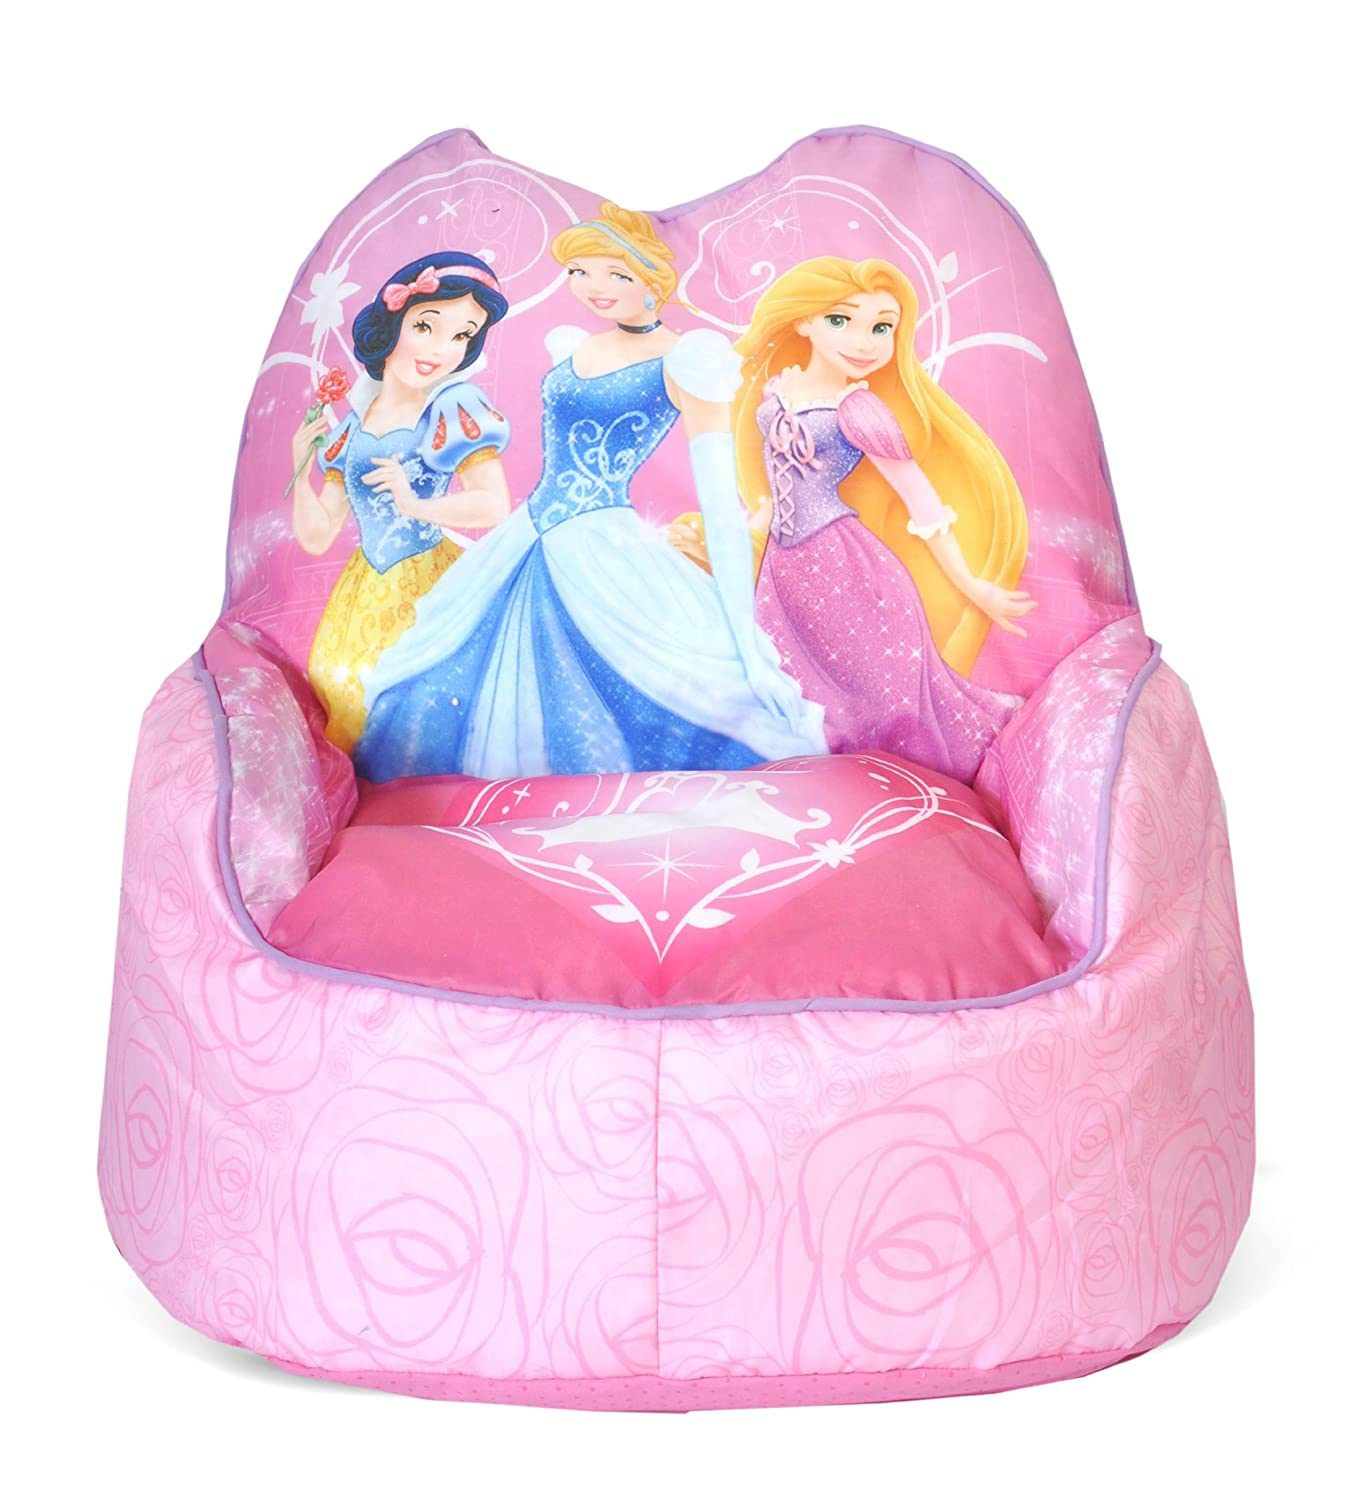 Kids chair princess png - Buy Disney Princess Toddler Bean Bag Sofa Chair Online At Low Prices In India Amazon In